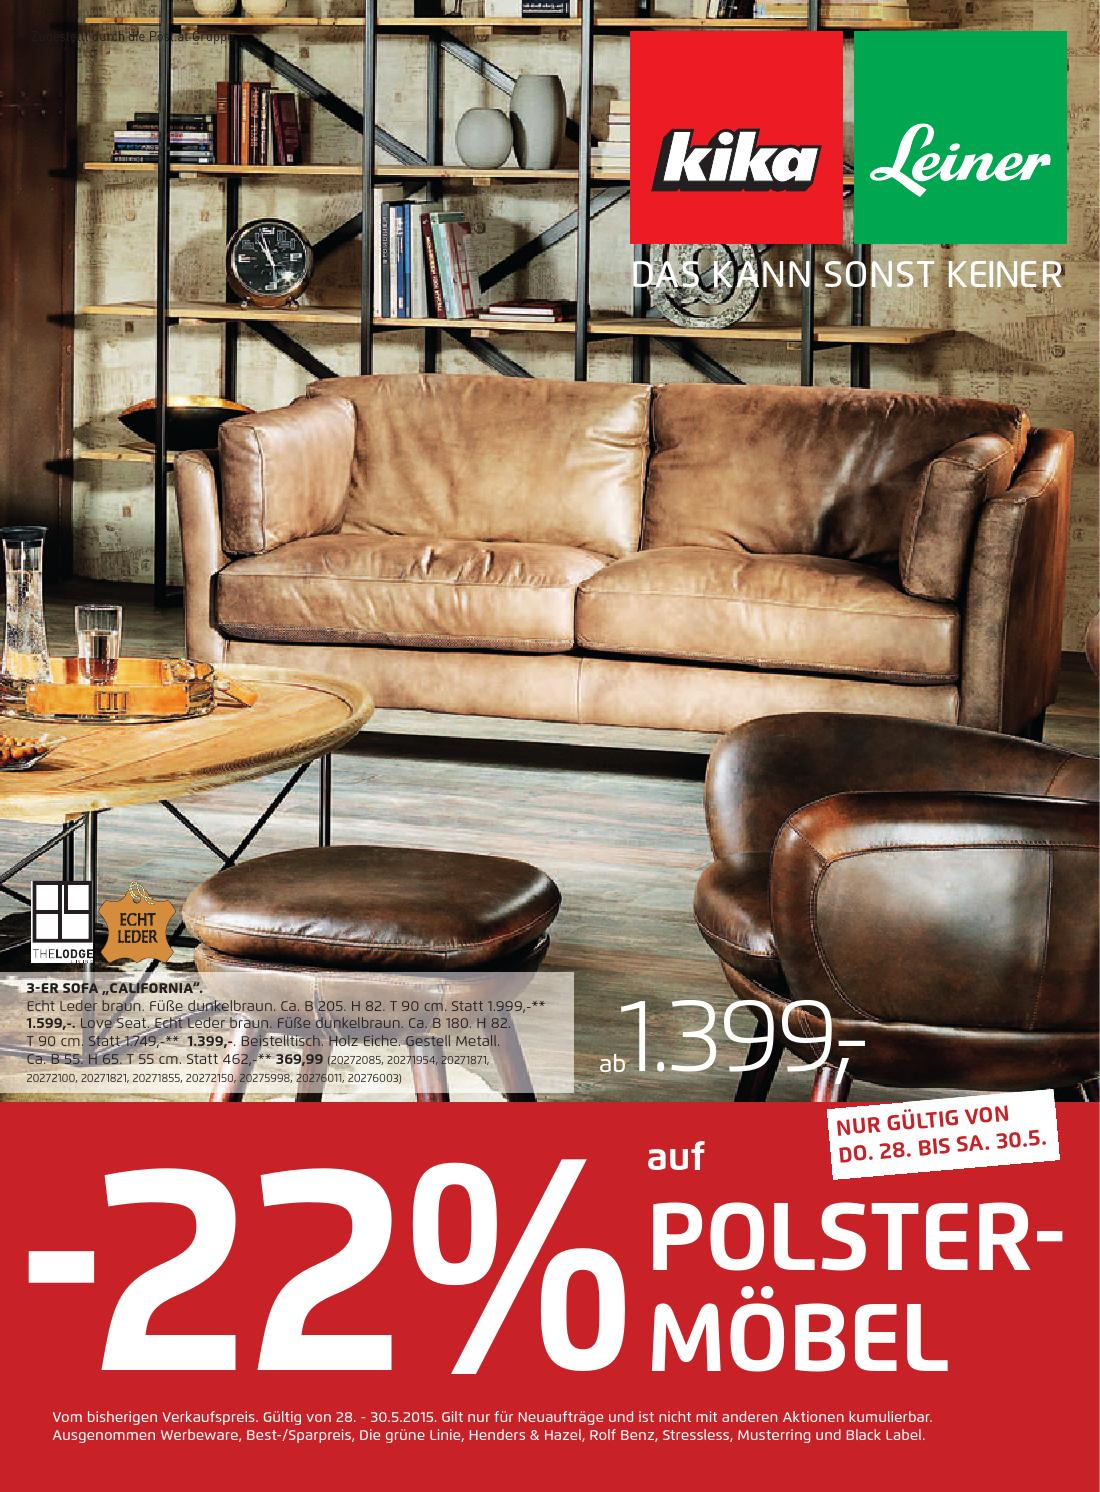 Leiner Angebote 26mai 7juni2015 By Promoangebote At Issuu